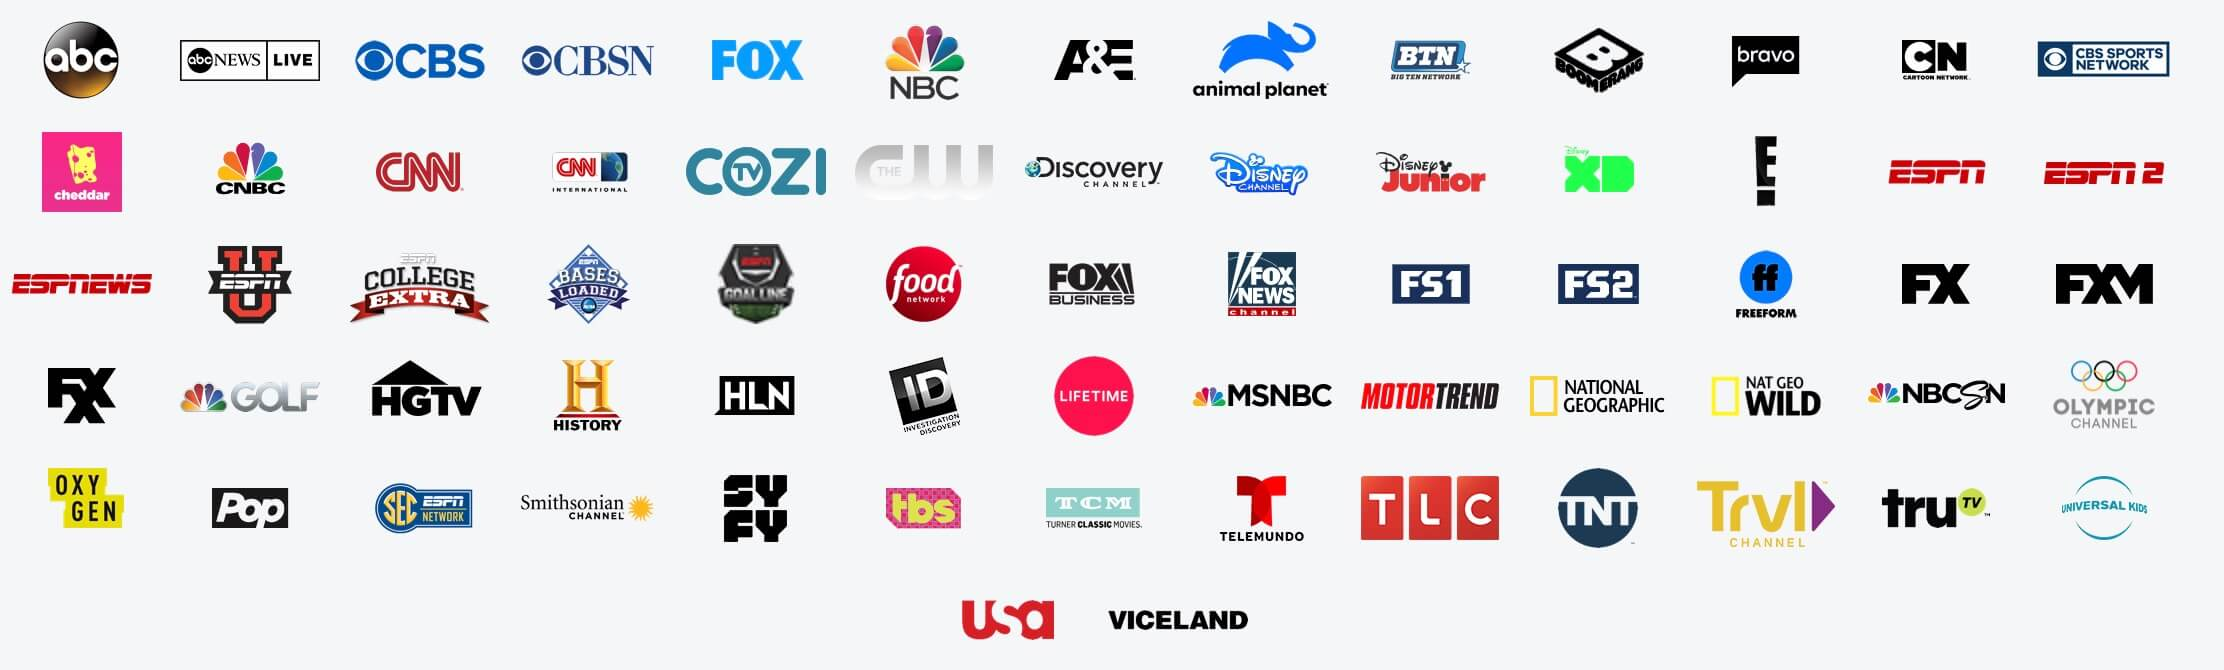 Hulu with Live TV channels